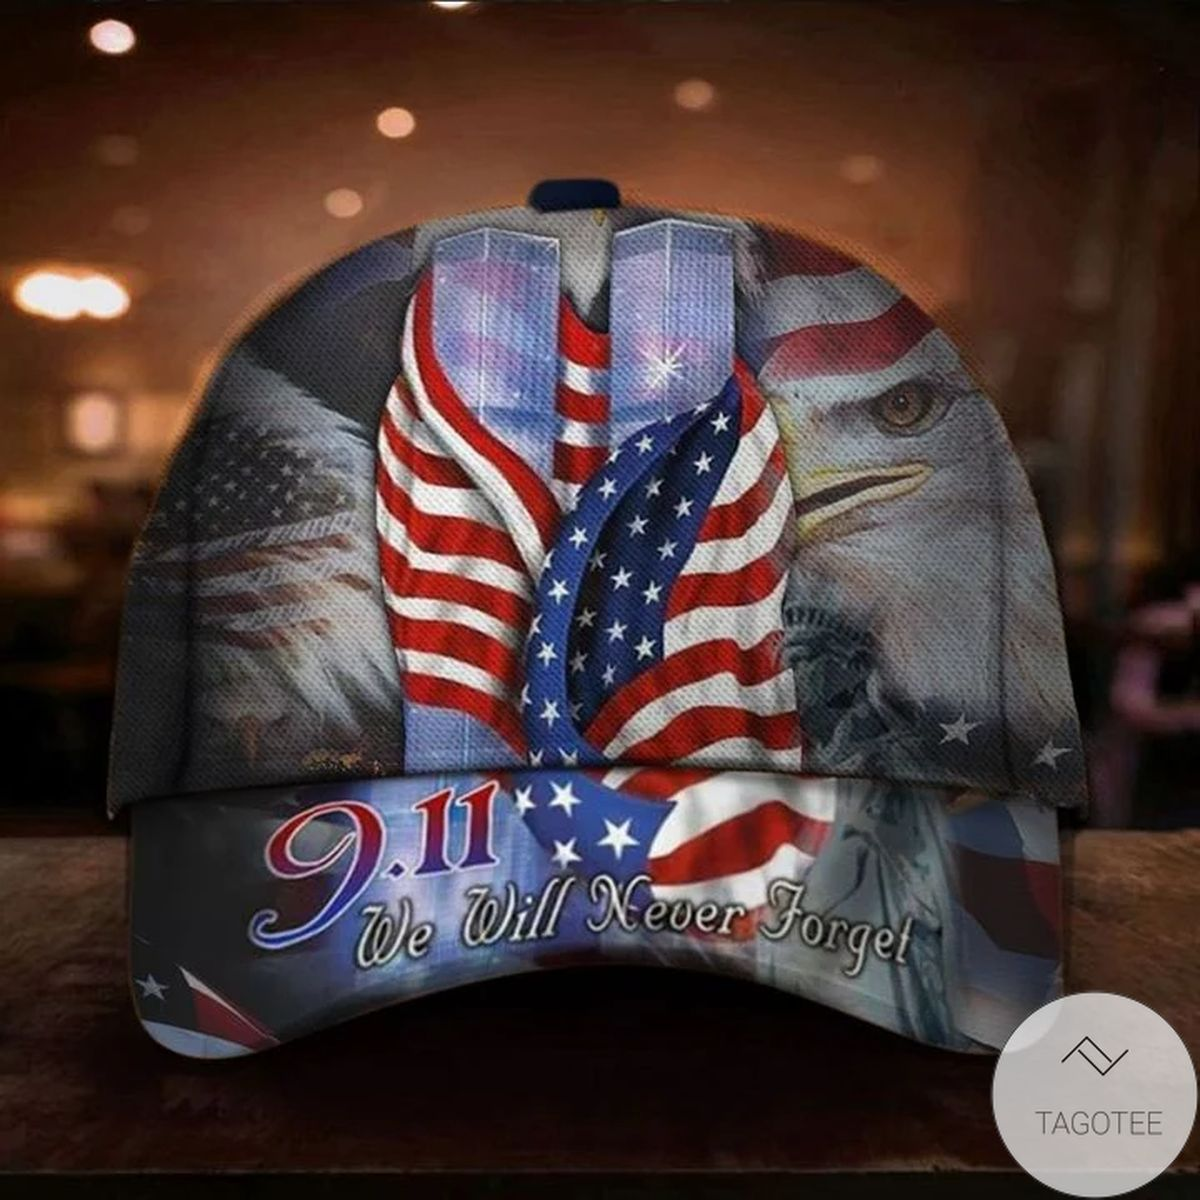 9.11 Never Forget Eagle USA Flag Cap In Memorial Twin Tower Attacks Patriot Day Merch